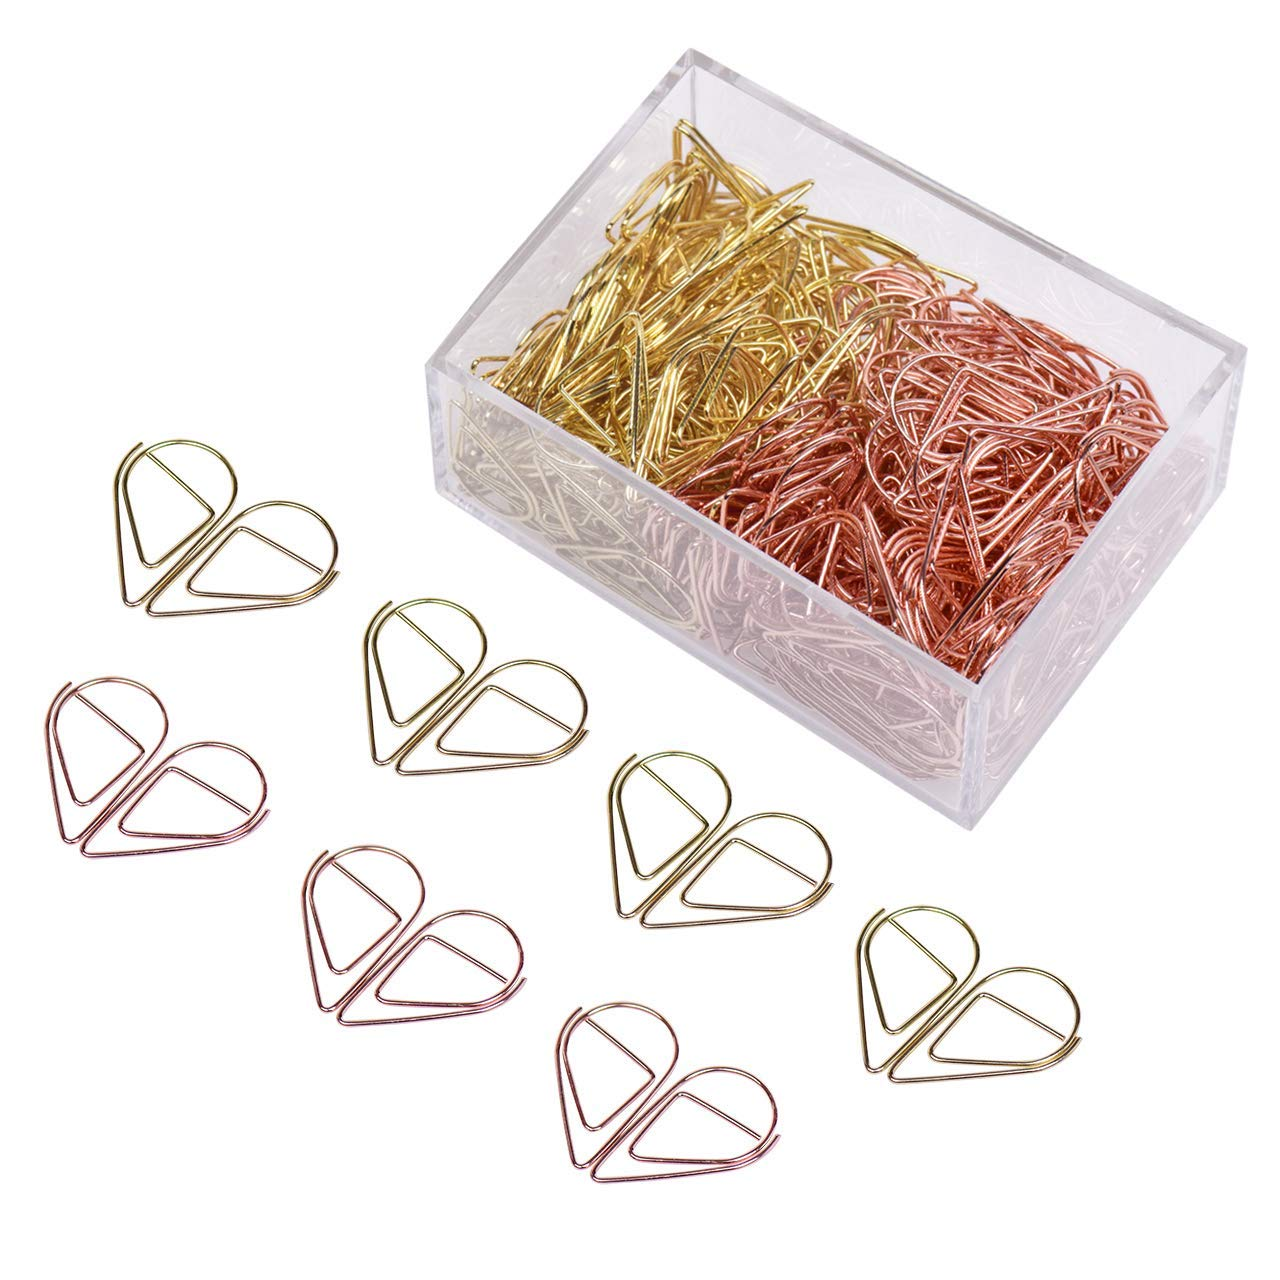 Eyourlife 300 Pieces Premium Cute Paperclips, Water Drop-Shaped Stainless Stell Wire Paper Clips, Lovely Office Supplies Decorations (1 inch)(Gold & Rose Gold)